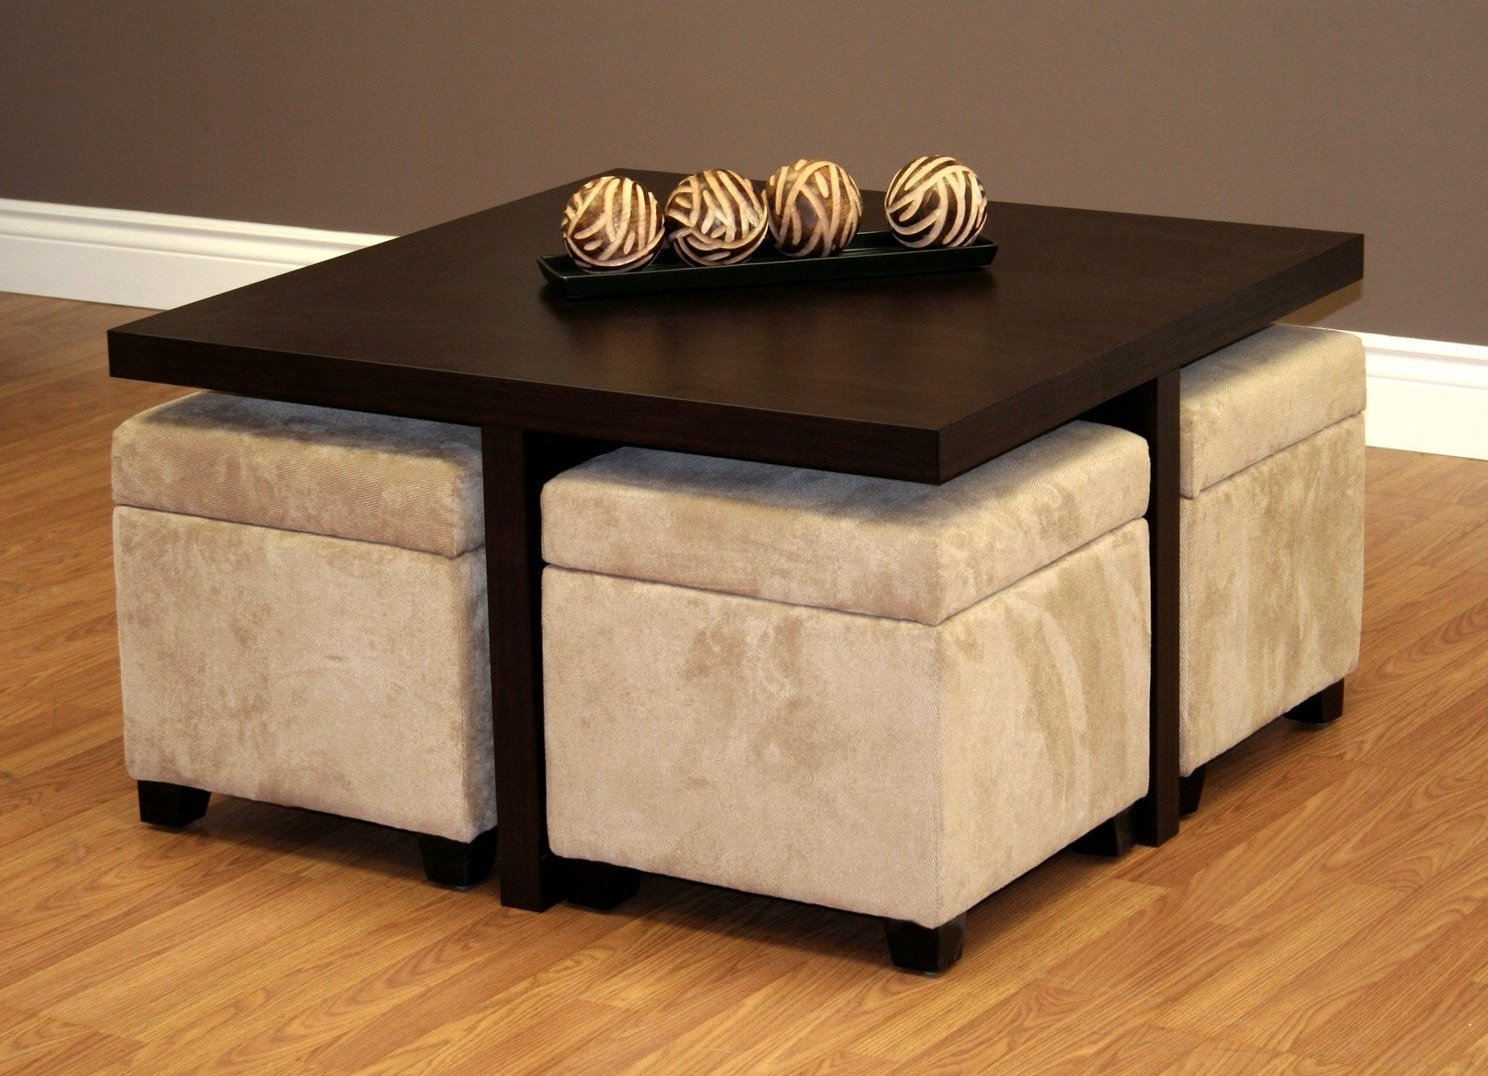 pouf in living room end tables sets for coffee table with pull out ottomans   roy home design